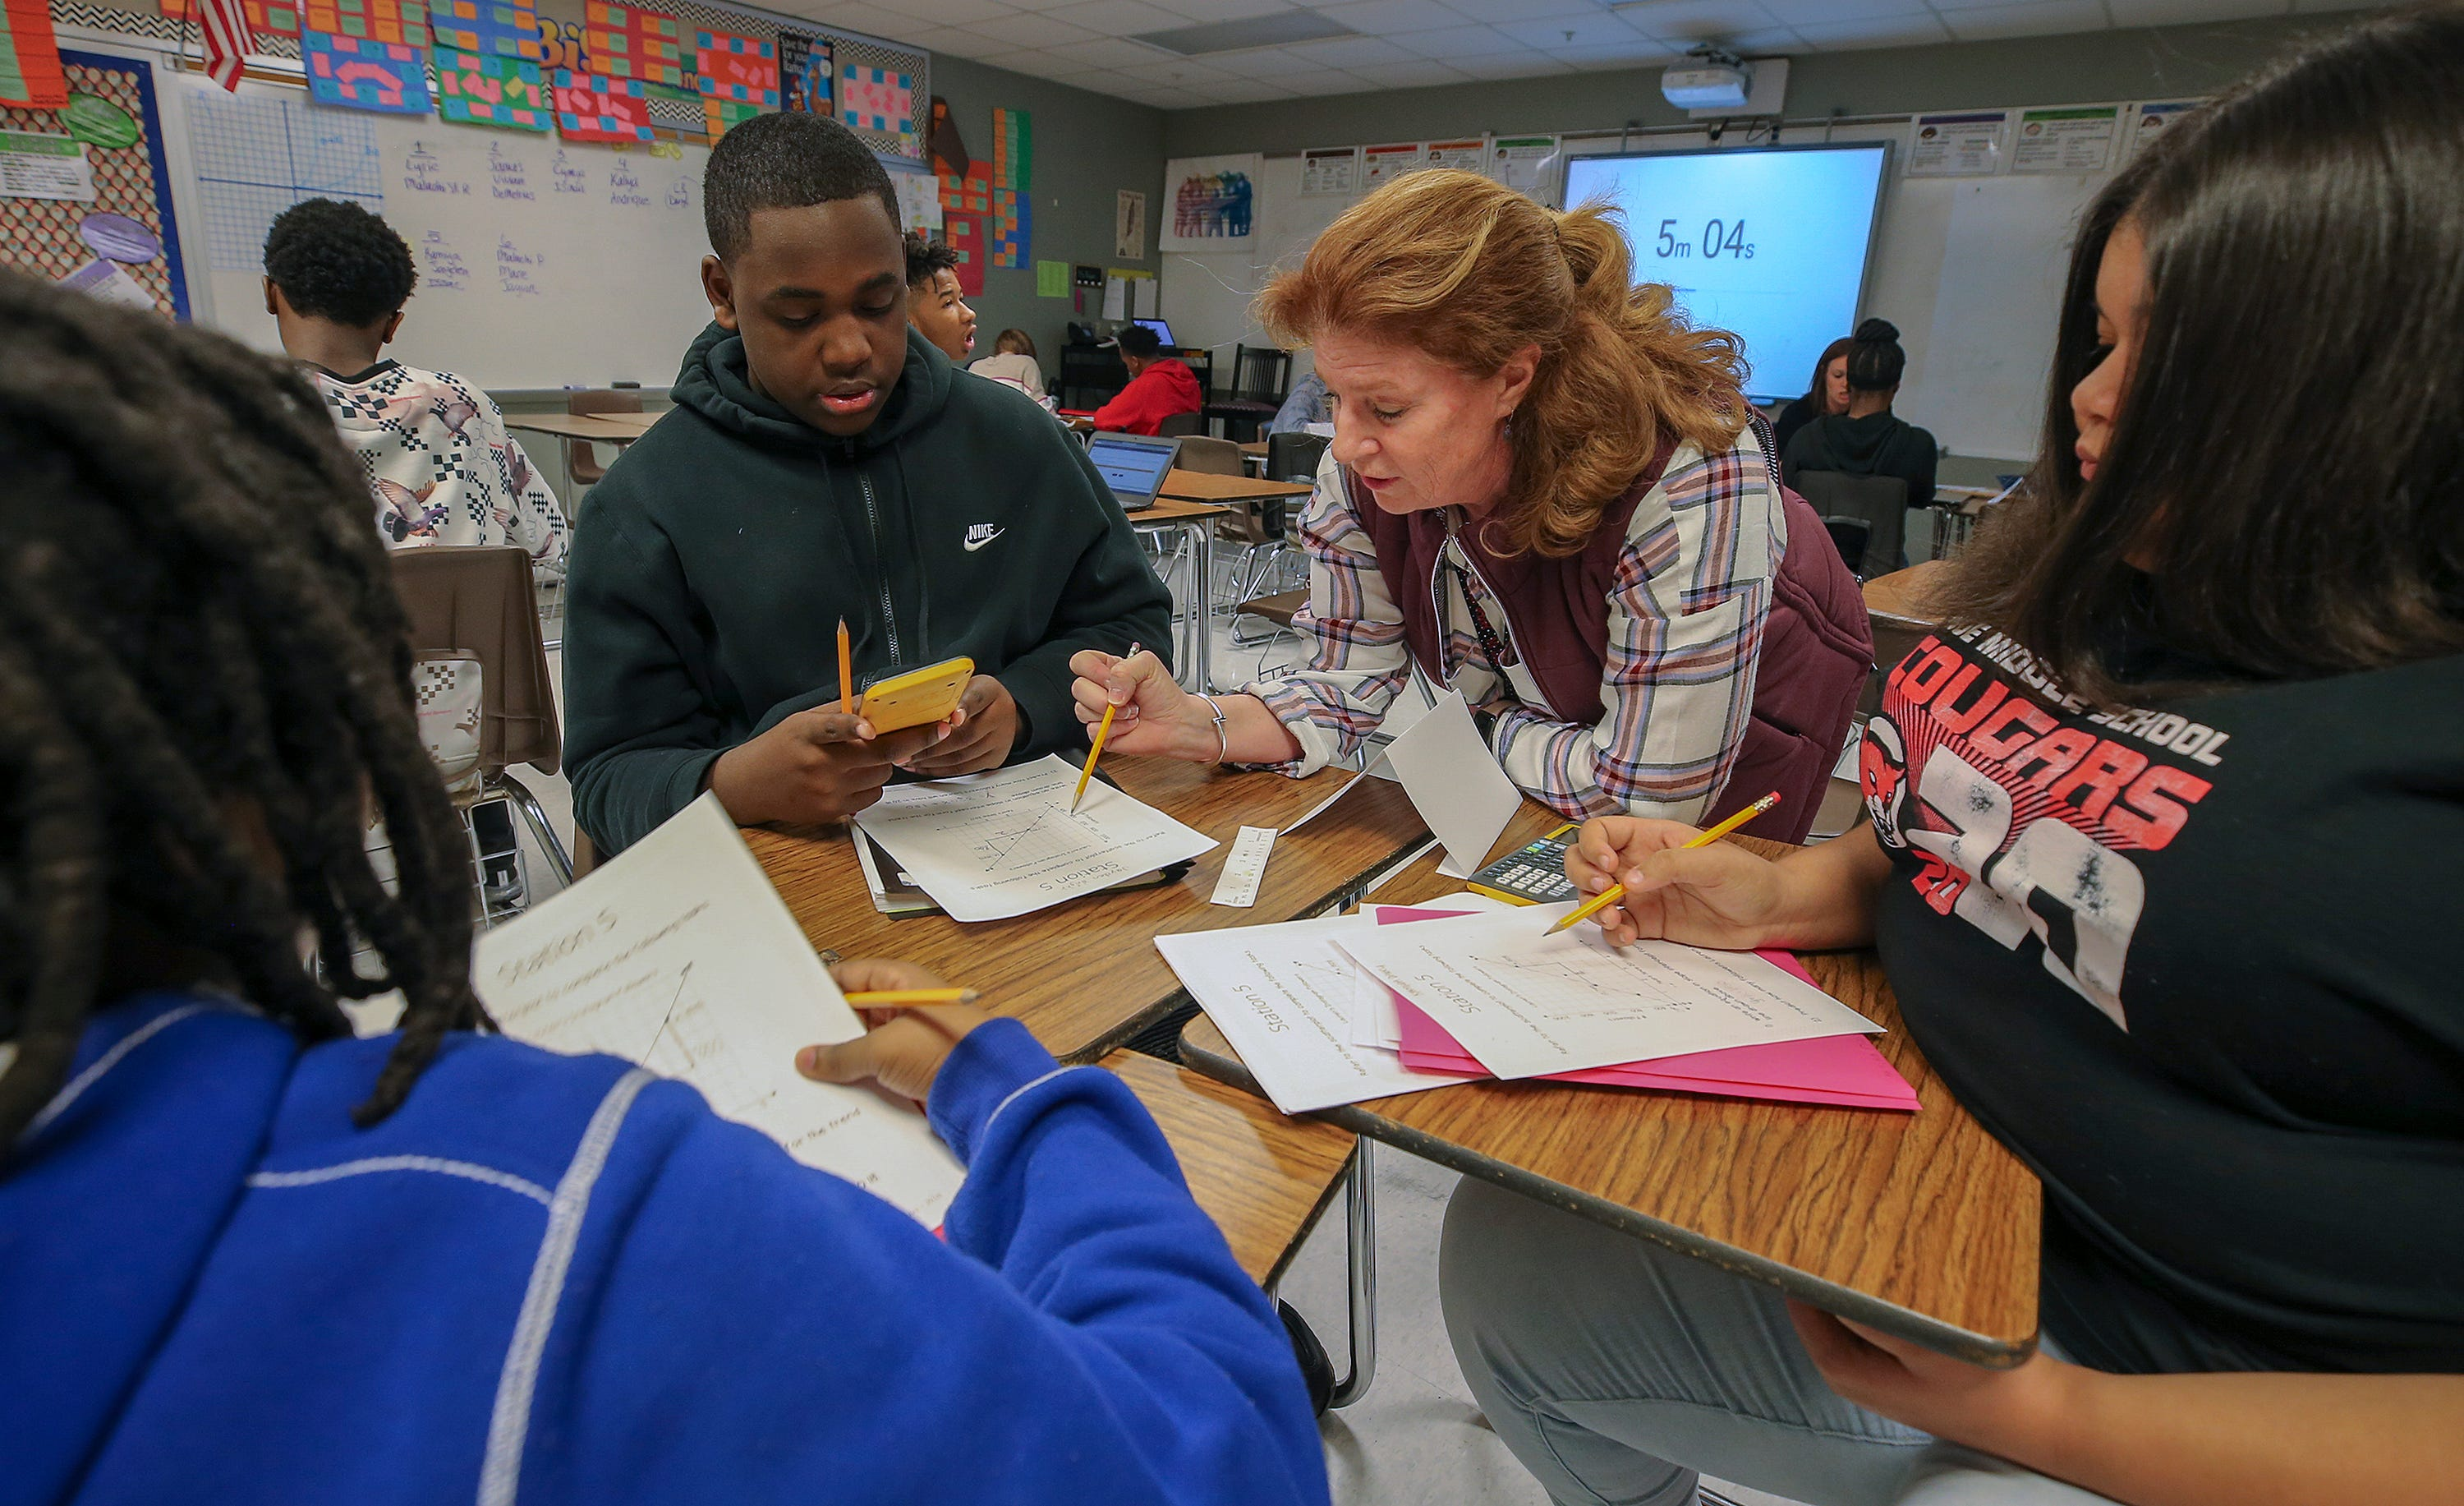 Teacher Shellie Lipka works with Issac Lacy, Jayden Wright  and Kamiya Dailey in a class at Noe Middle School on March 6, 2020.